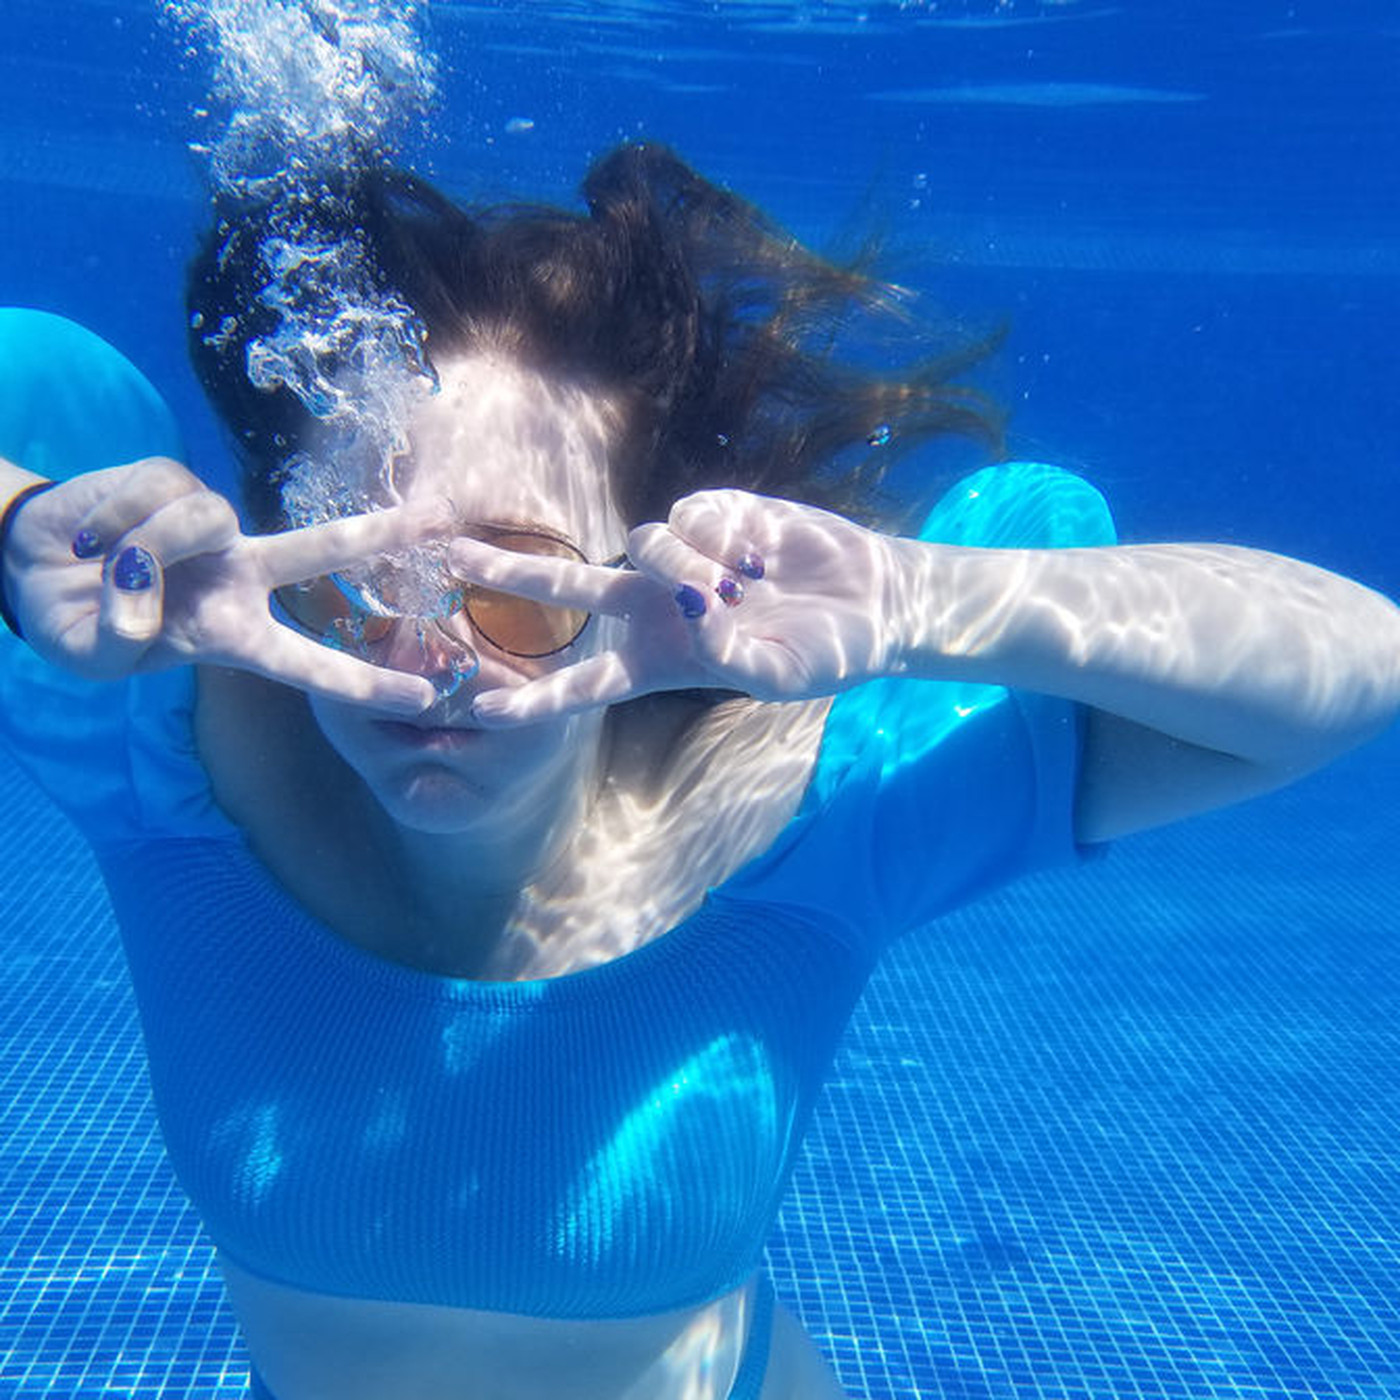 wholesale dealer dc252 a5480 Hot advice: take a vacation and an underwater selfie - The Verge